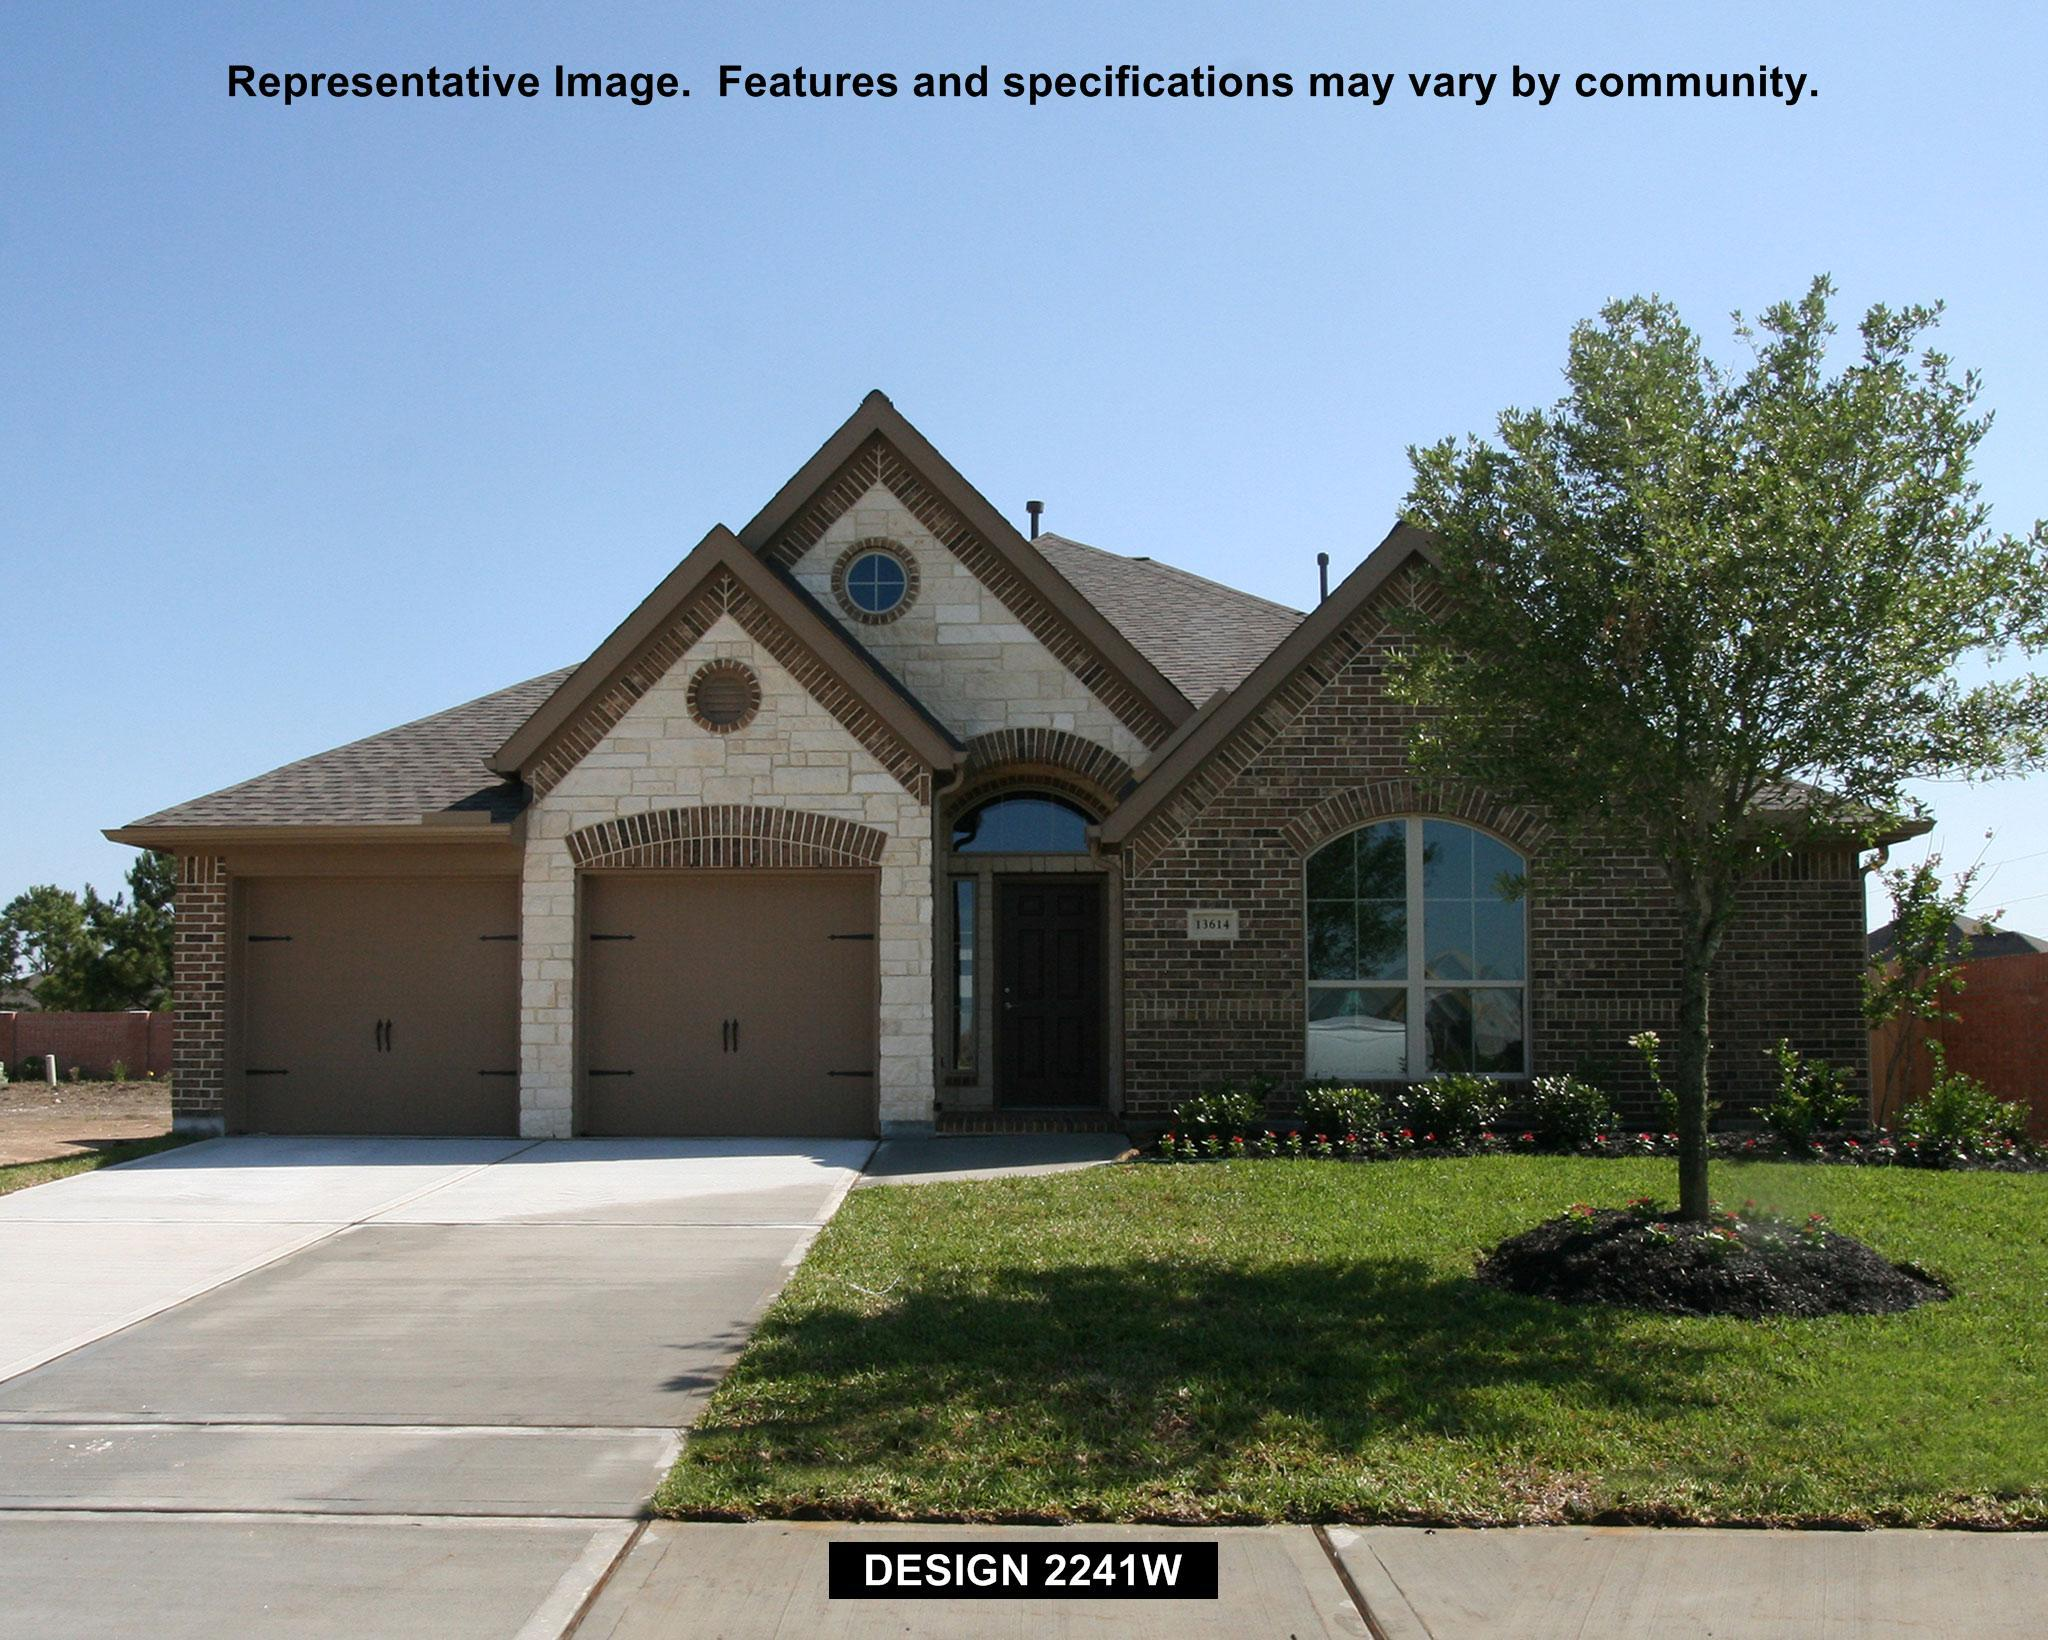 2241W - Pine Mill Ranch 55': Katy, TX - Perry Homes